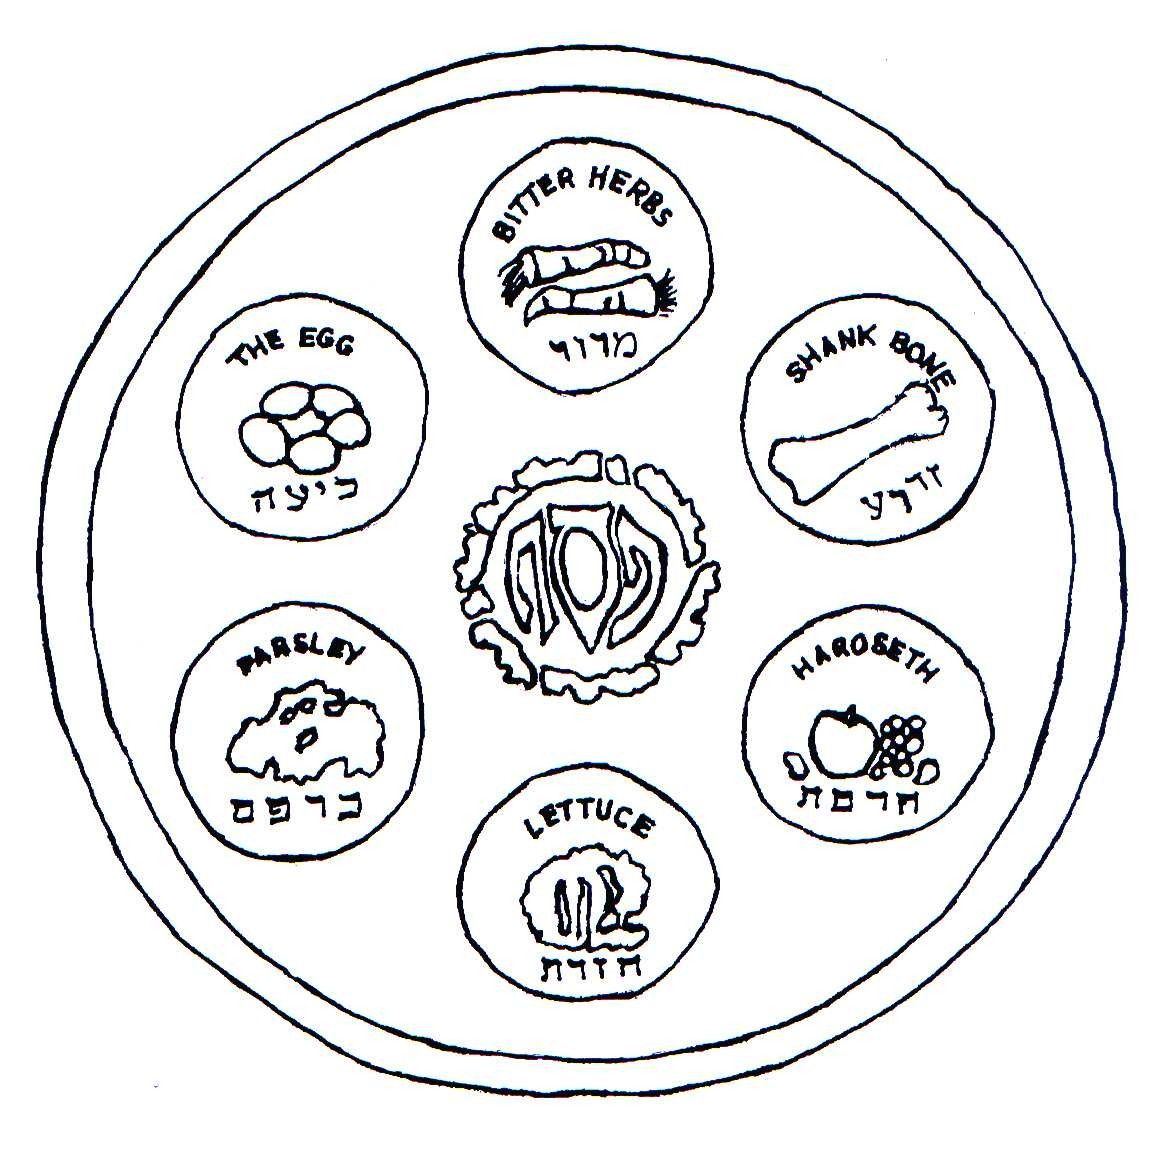 worksheet The Seder Plate Worksheet the seder plate good for coloring make your own haggadah at haggadot